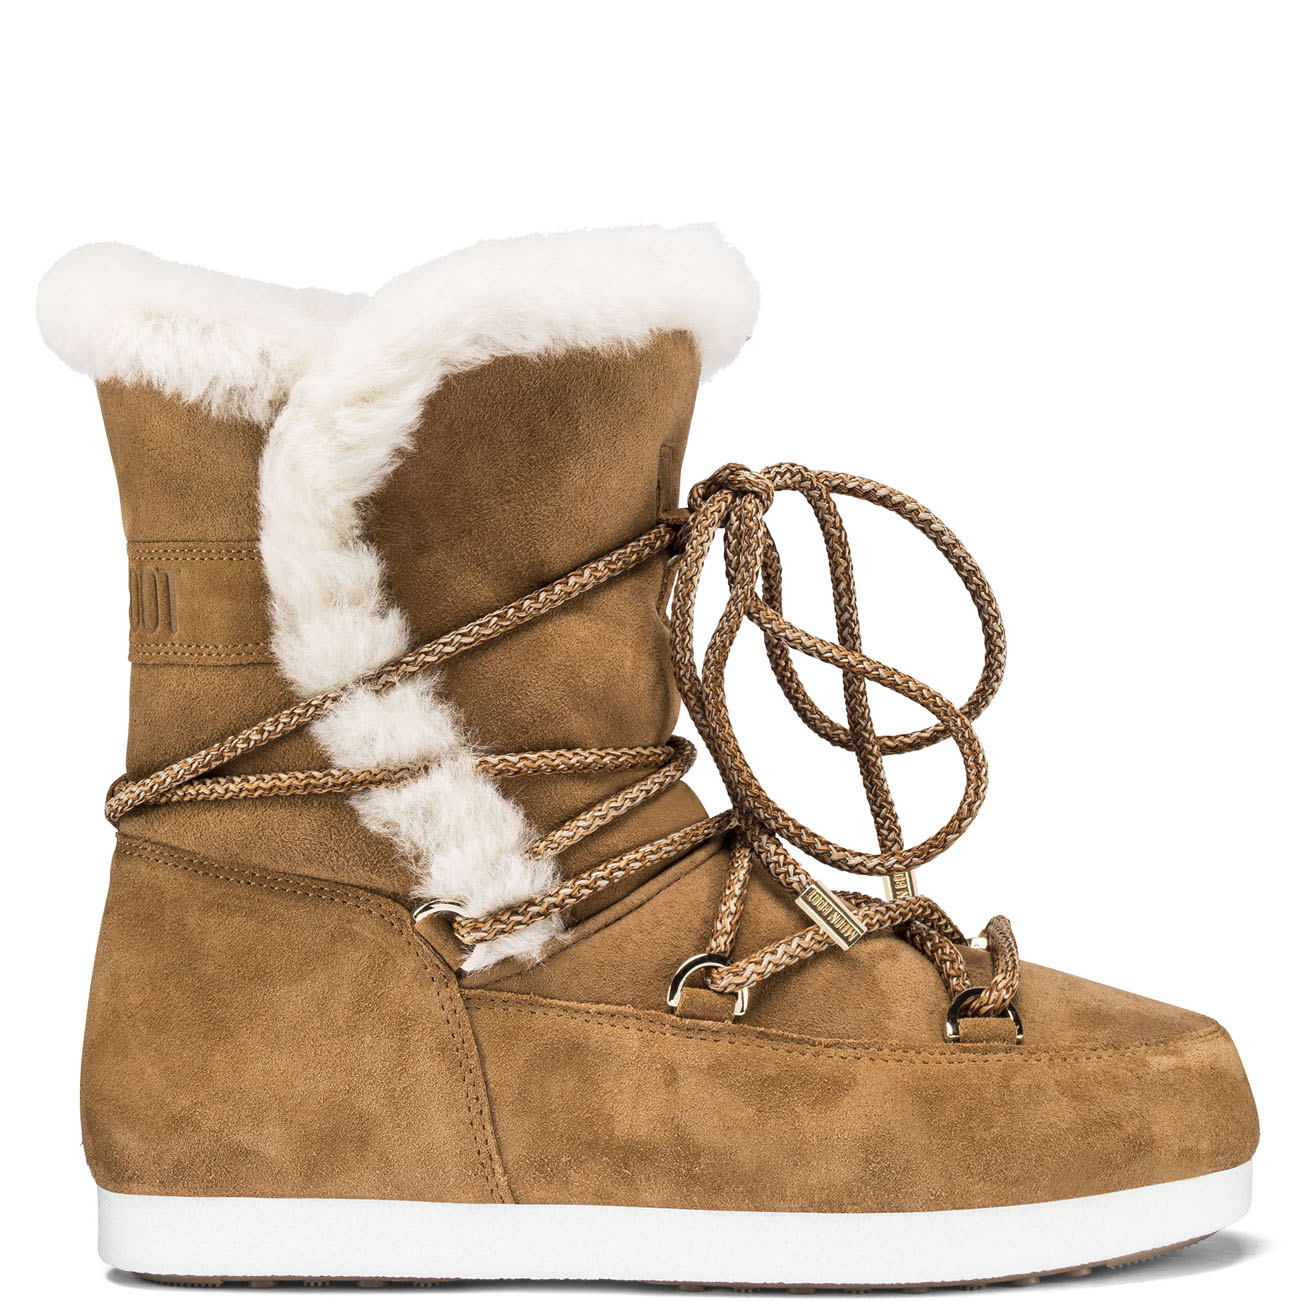 Damenschuhe Tecnica Moon Boot Far Faux Side High Shearling Winter Faux Far Fur Stiefel UK 3-8 e1960f